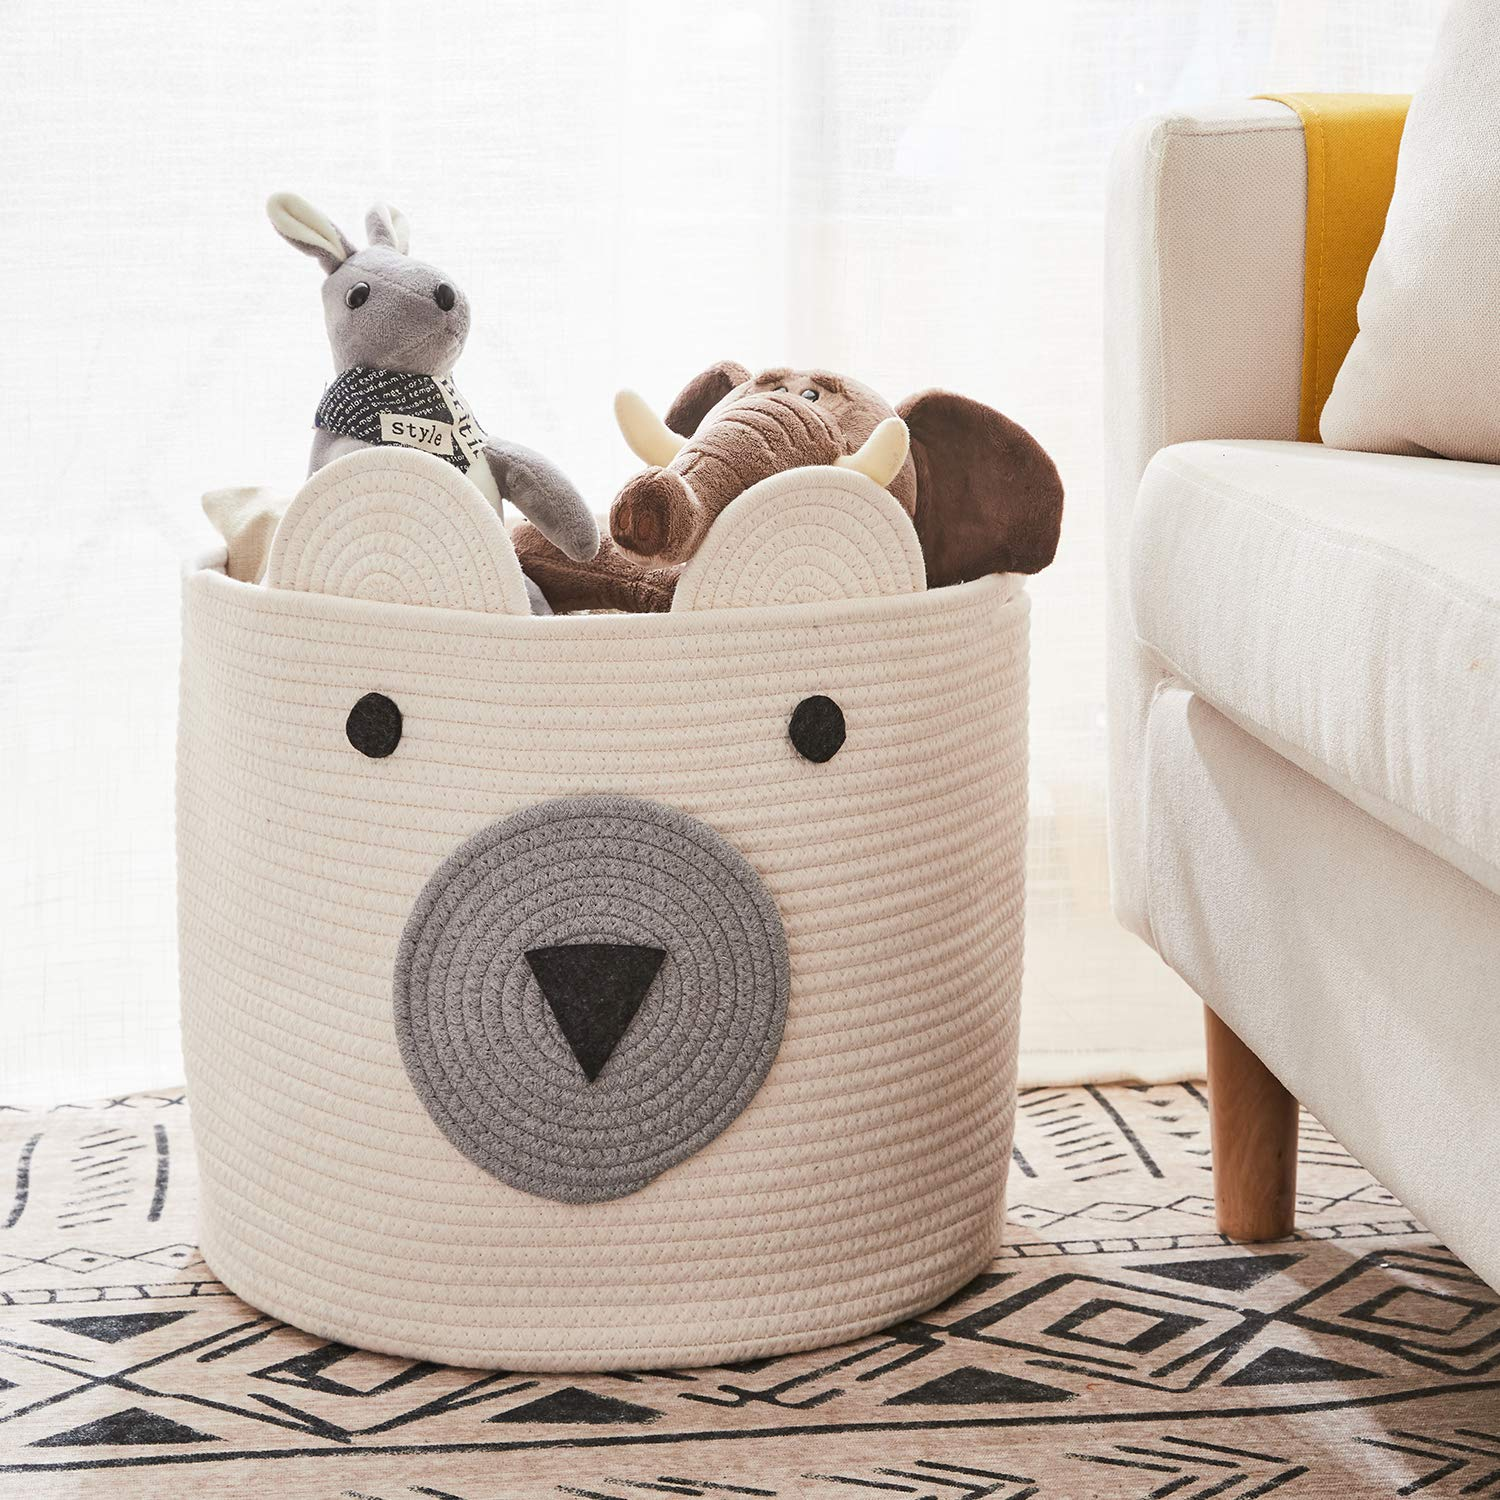 Cute Storage Basket for Toys Cotton Rope Basket x 10 H D Cloths in Bedroom COMEMORY Bear Basket Nursery /& Living Room Toy Storage Bin 12 Woven Laundry Hamper